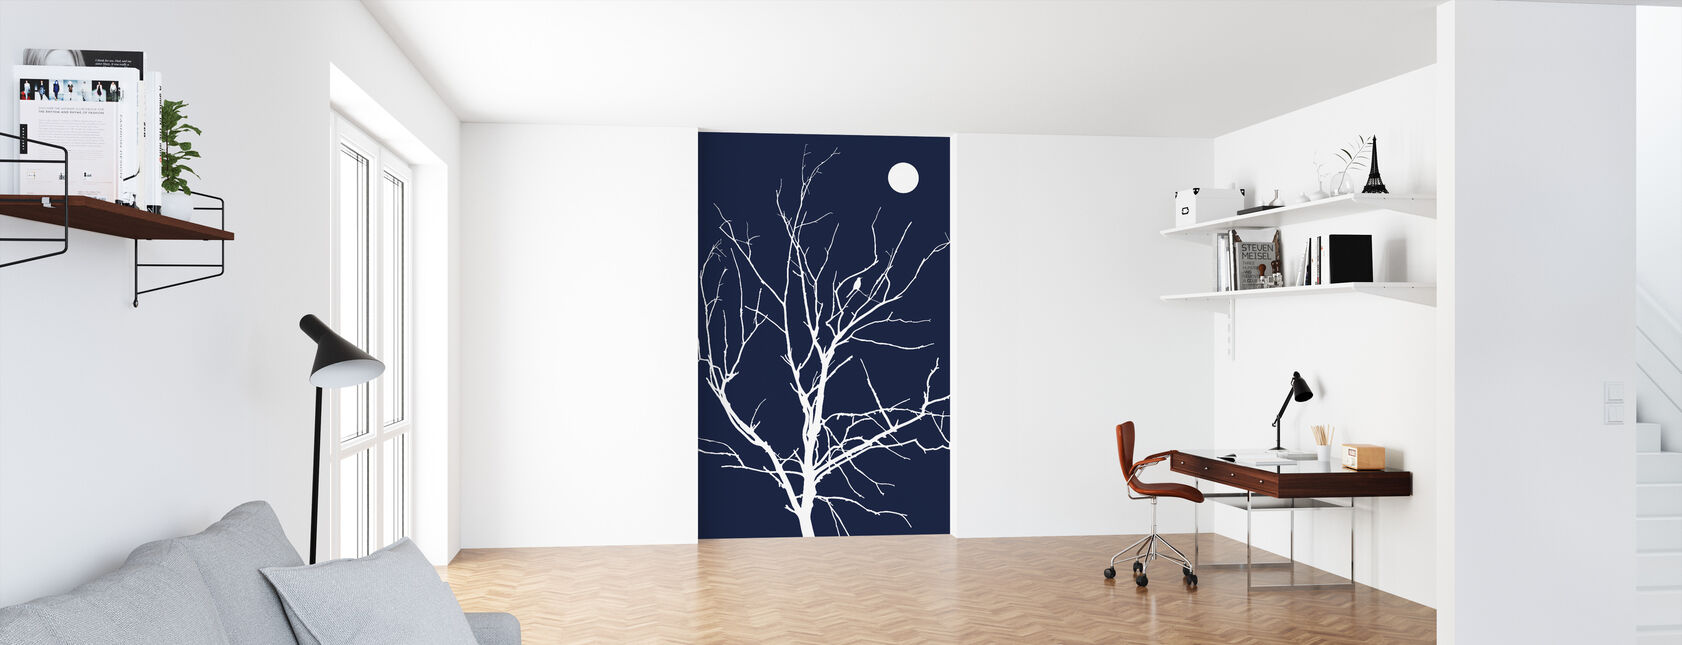 Lonely Bird Night Moon - Wallpaper - Office